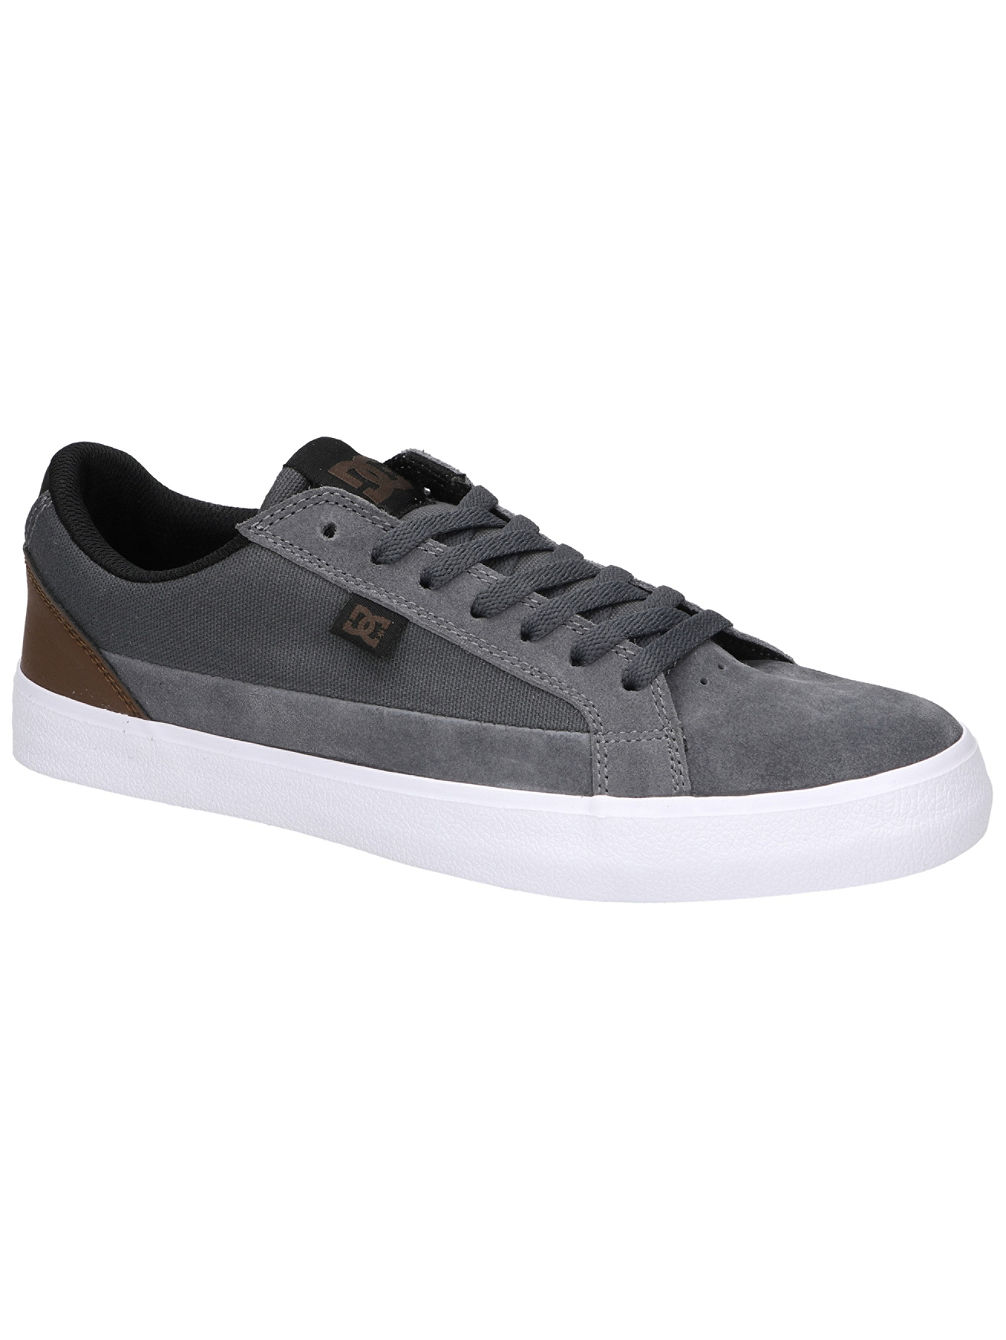 Lynnfield S Skate Shoes